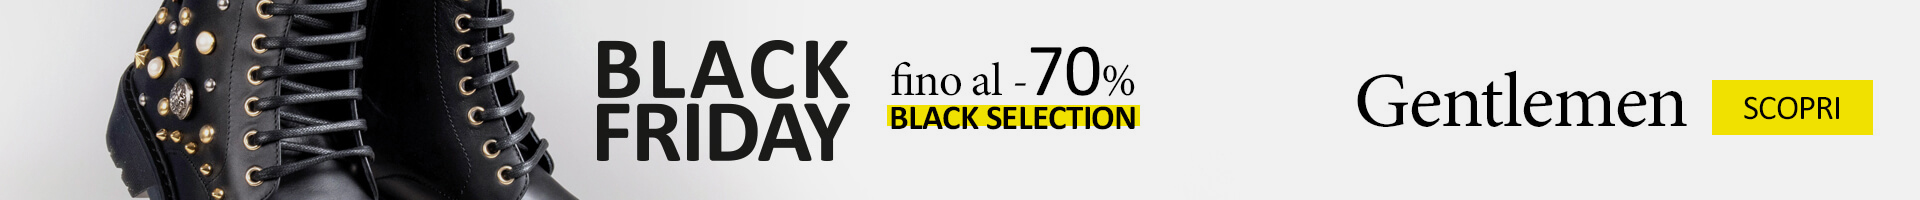 Black Friday 2018 uomo